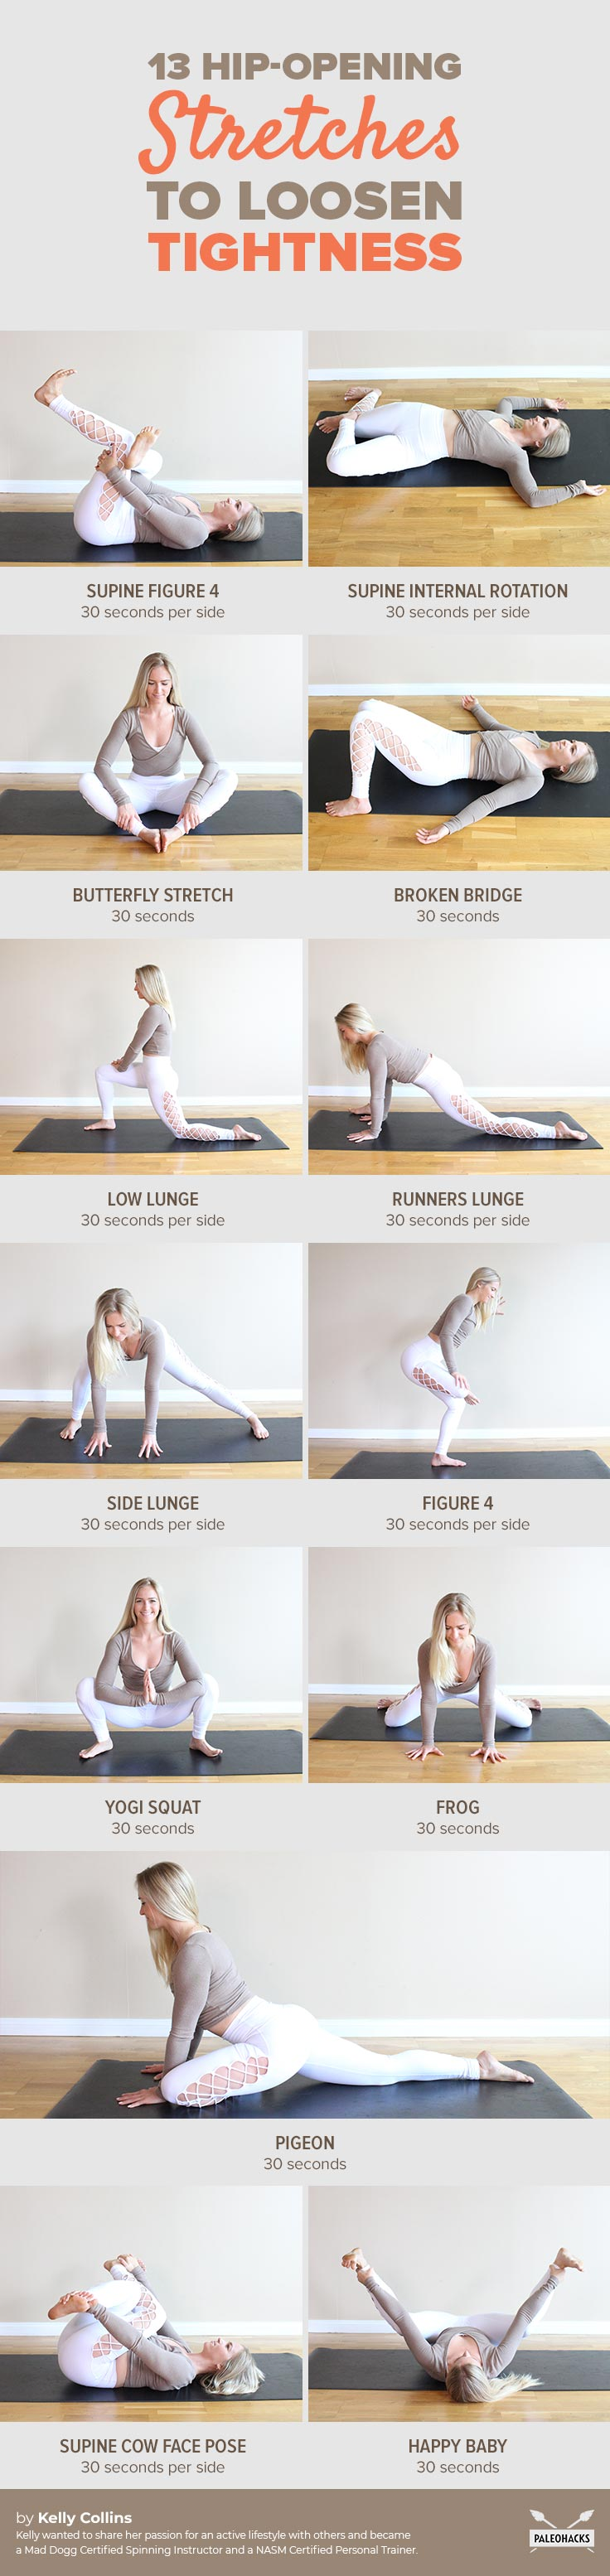 13-Hip-Opening-Stretches-to-Loosen-Tightness-infog.jpg